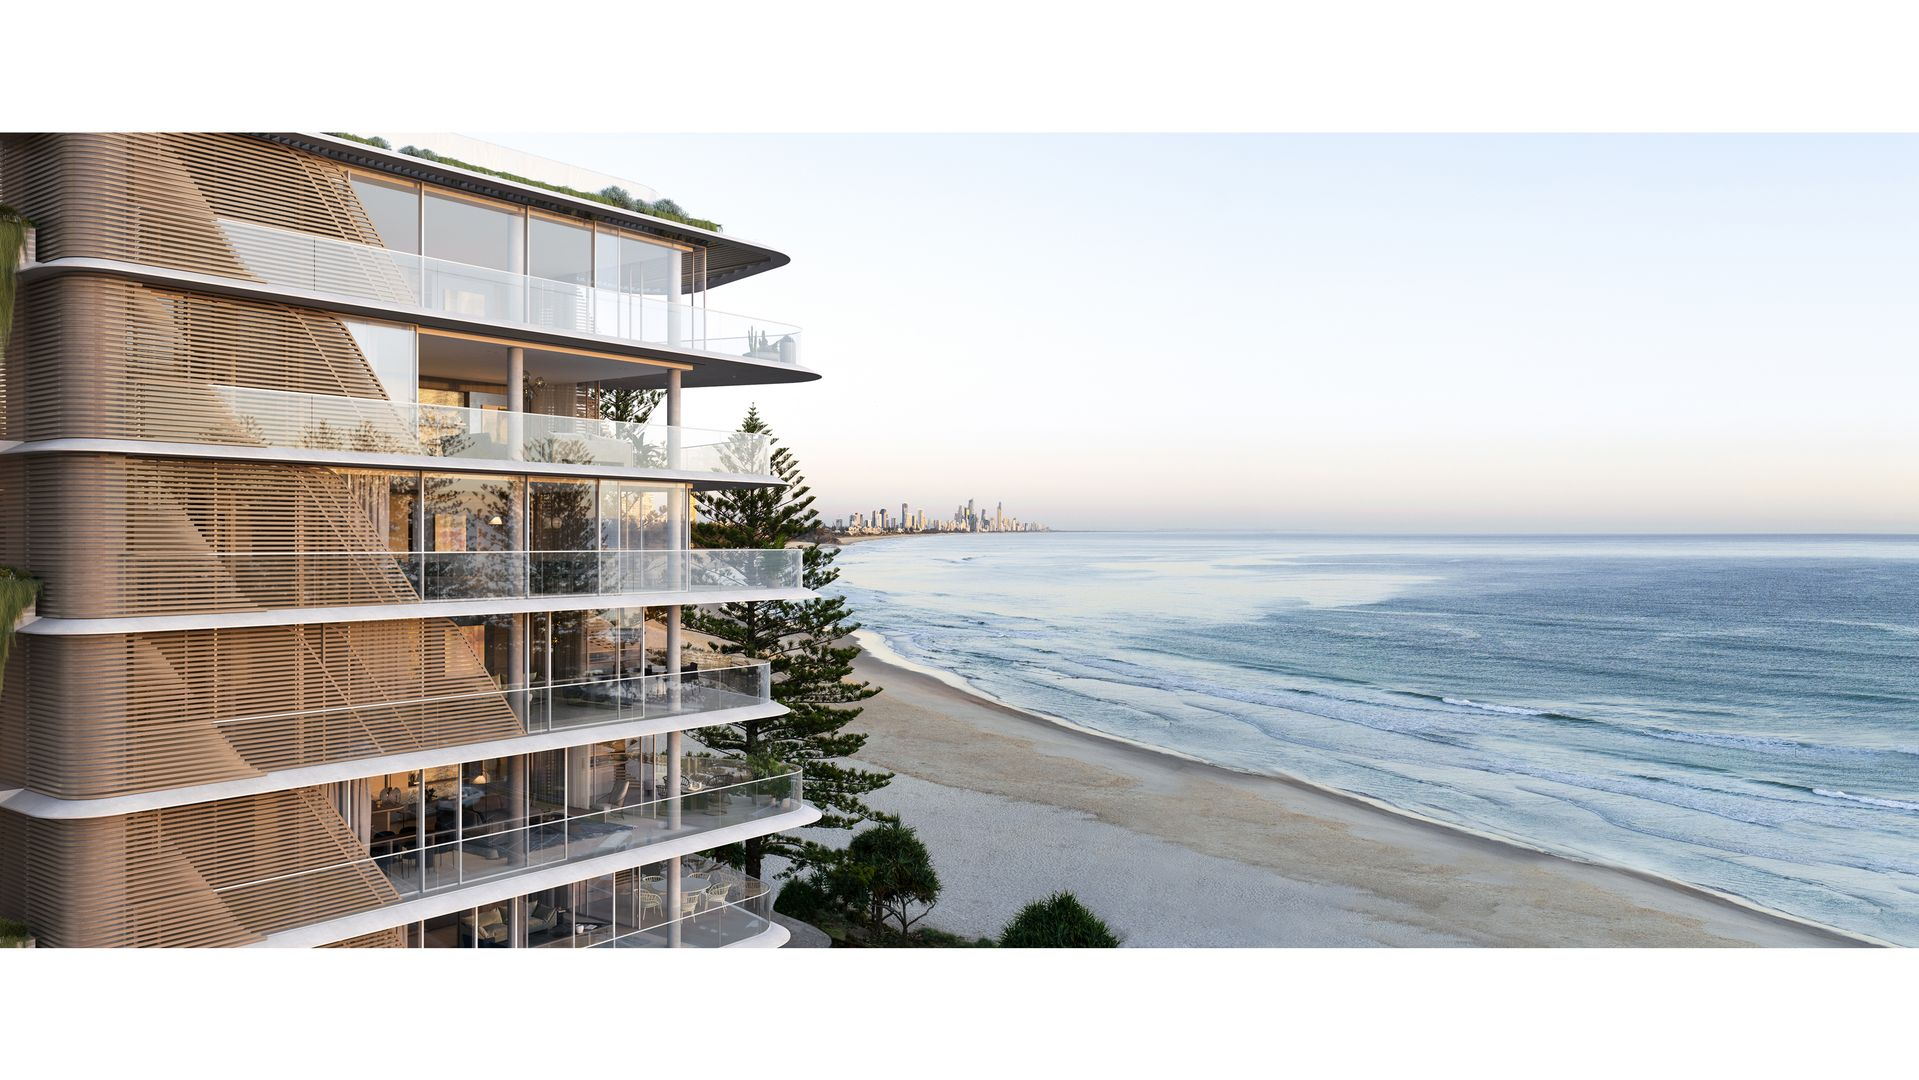 46 Goodwin Terrace, Burleigh Heads, QLD 4220, Image 0